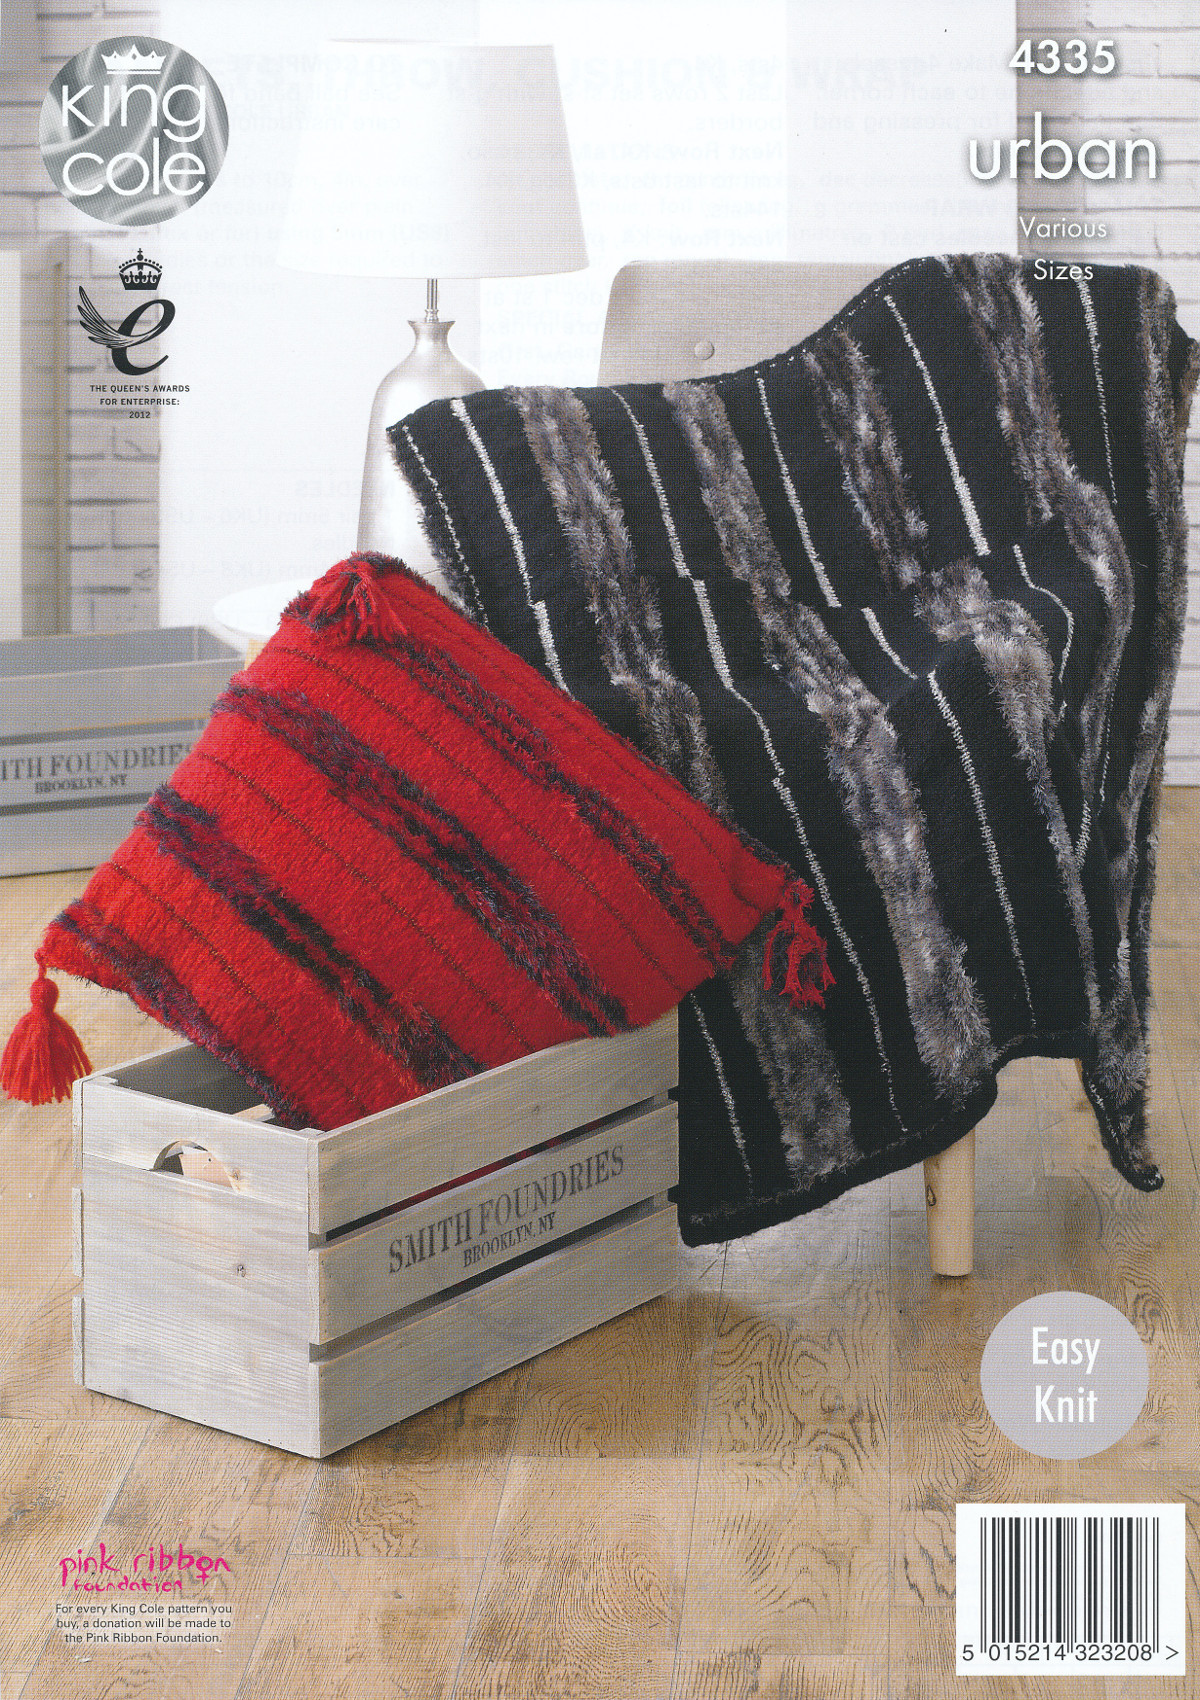 Free Knitting Patterns For Dogs Sweater : King Cole Urban Knitting Pattern Throw Blankets Cushion & Wrap Easy Knit ...